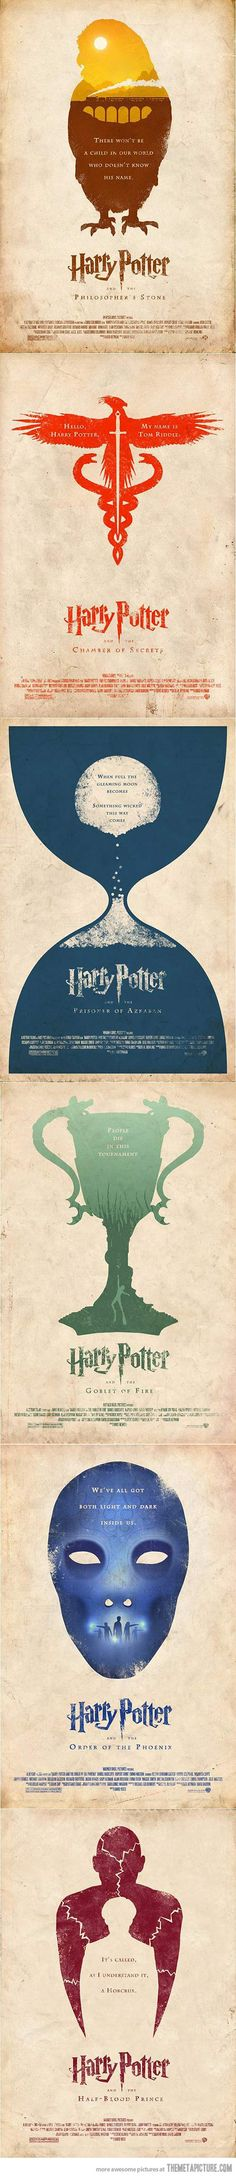 Alternative Poster Versions Of Harry Potter Movies --- love!